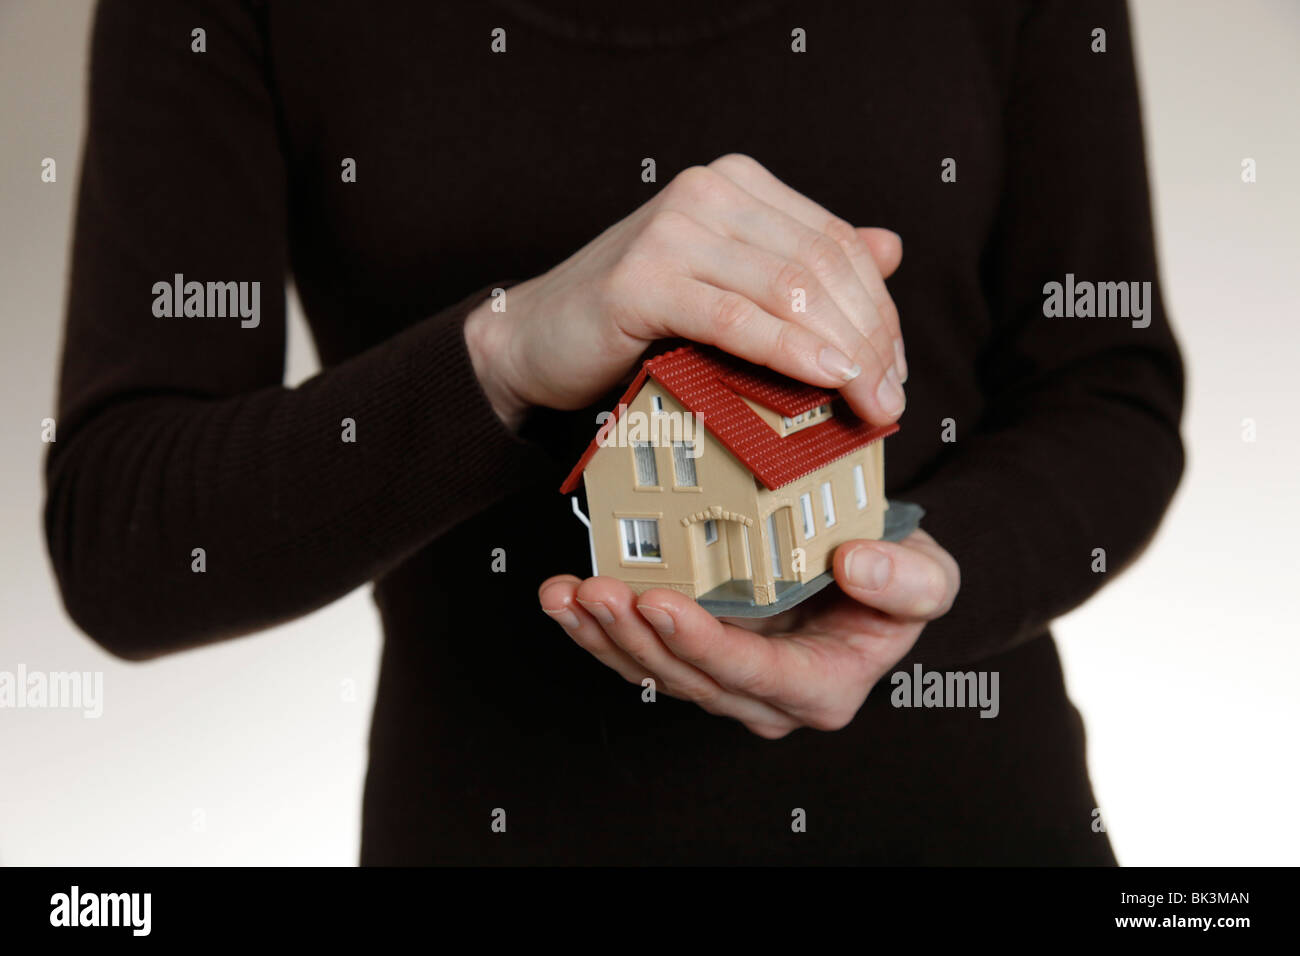 Hands holding a model house. Symbol: Property as a save investment - Stock Image